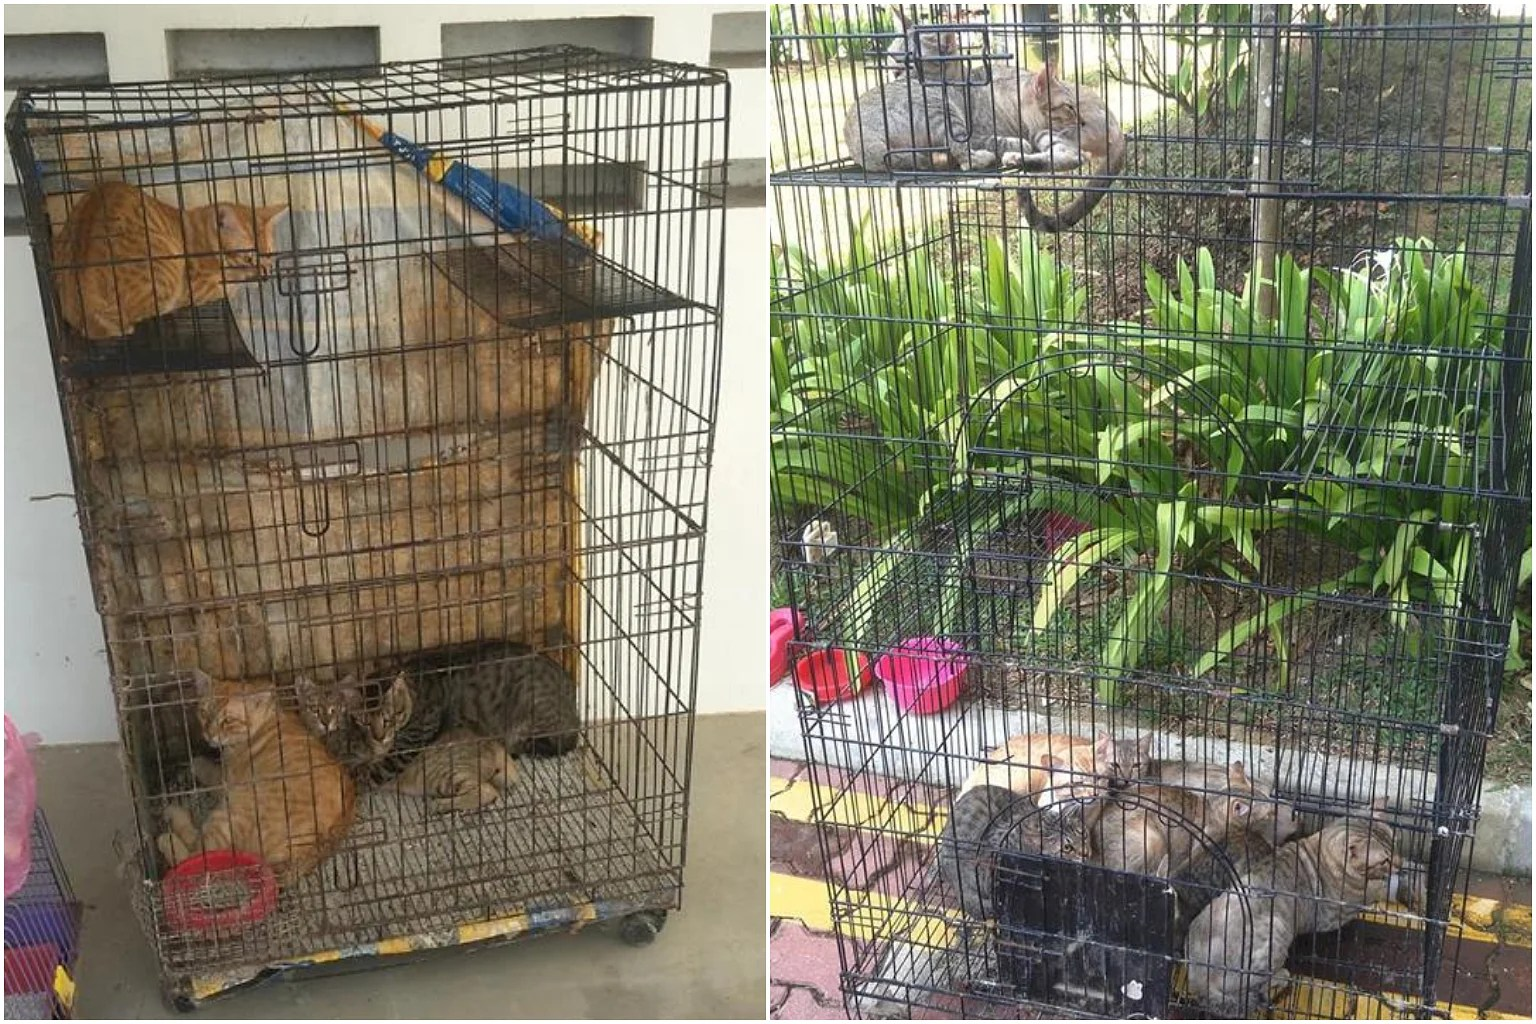 Cat Cage Gumtree Ava Investigating After 16 Cats Left In Cages In Punggol